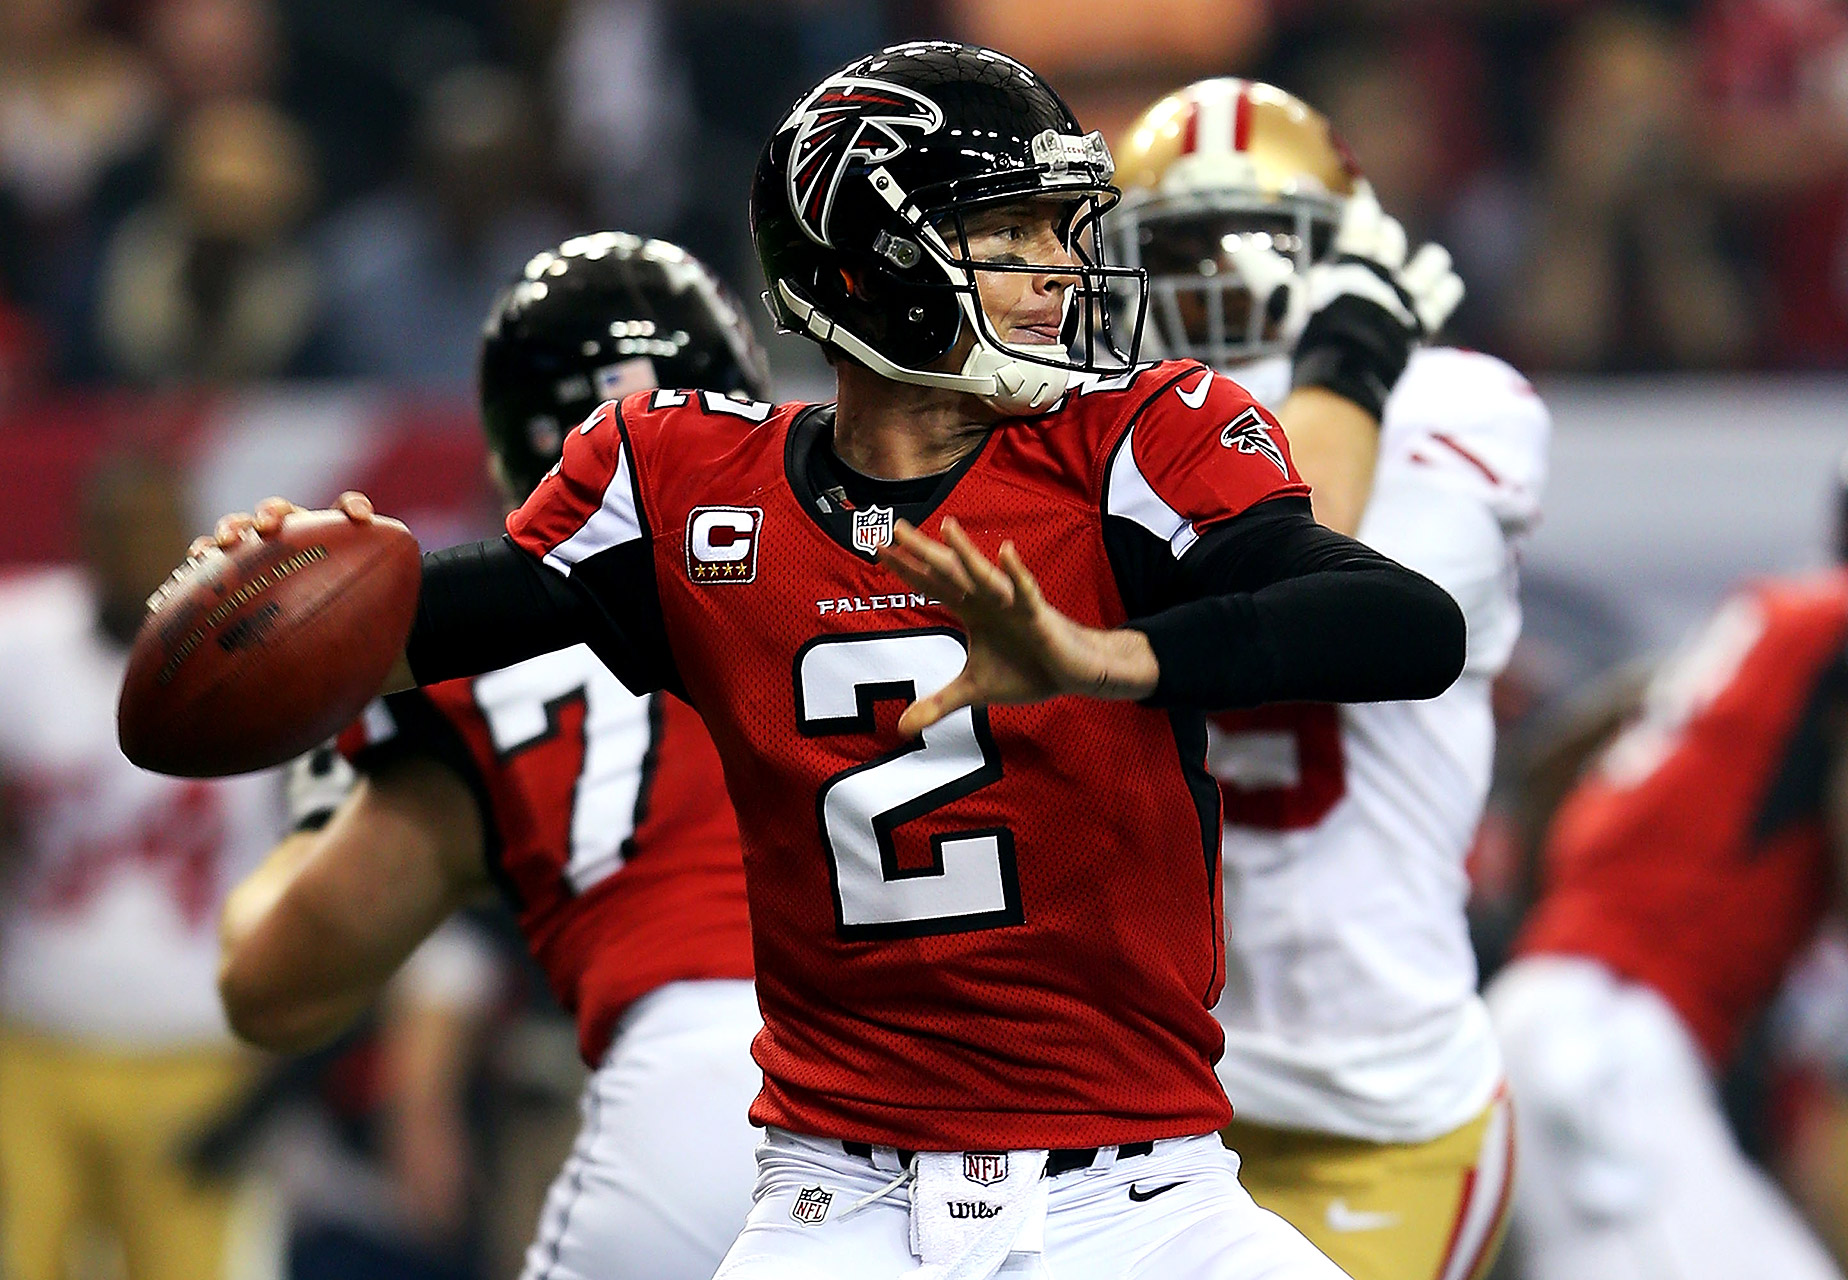 Footballplayersdeluxe Matt Ryan: #NFLRank No. 22, Offense: Matt Ryan